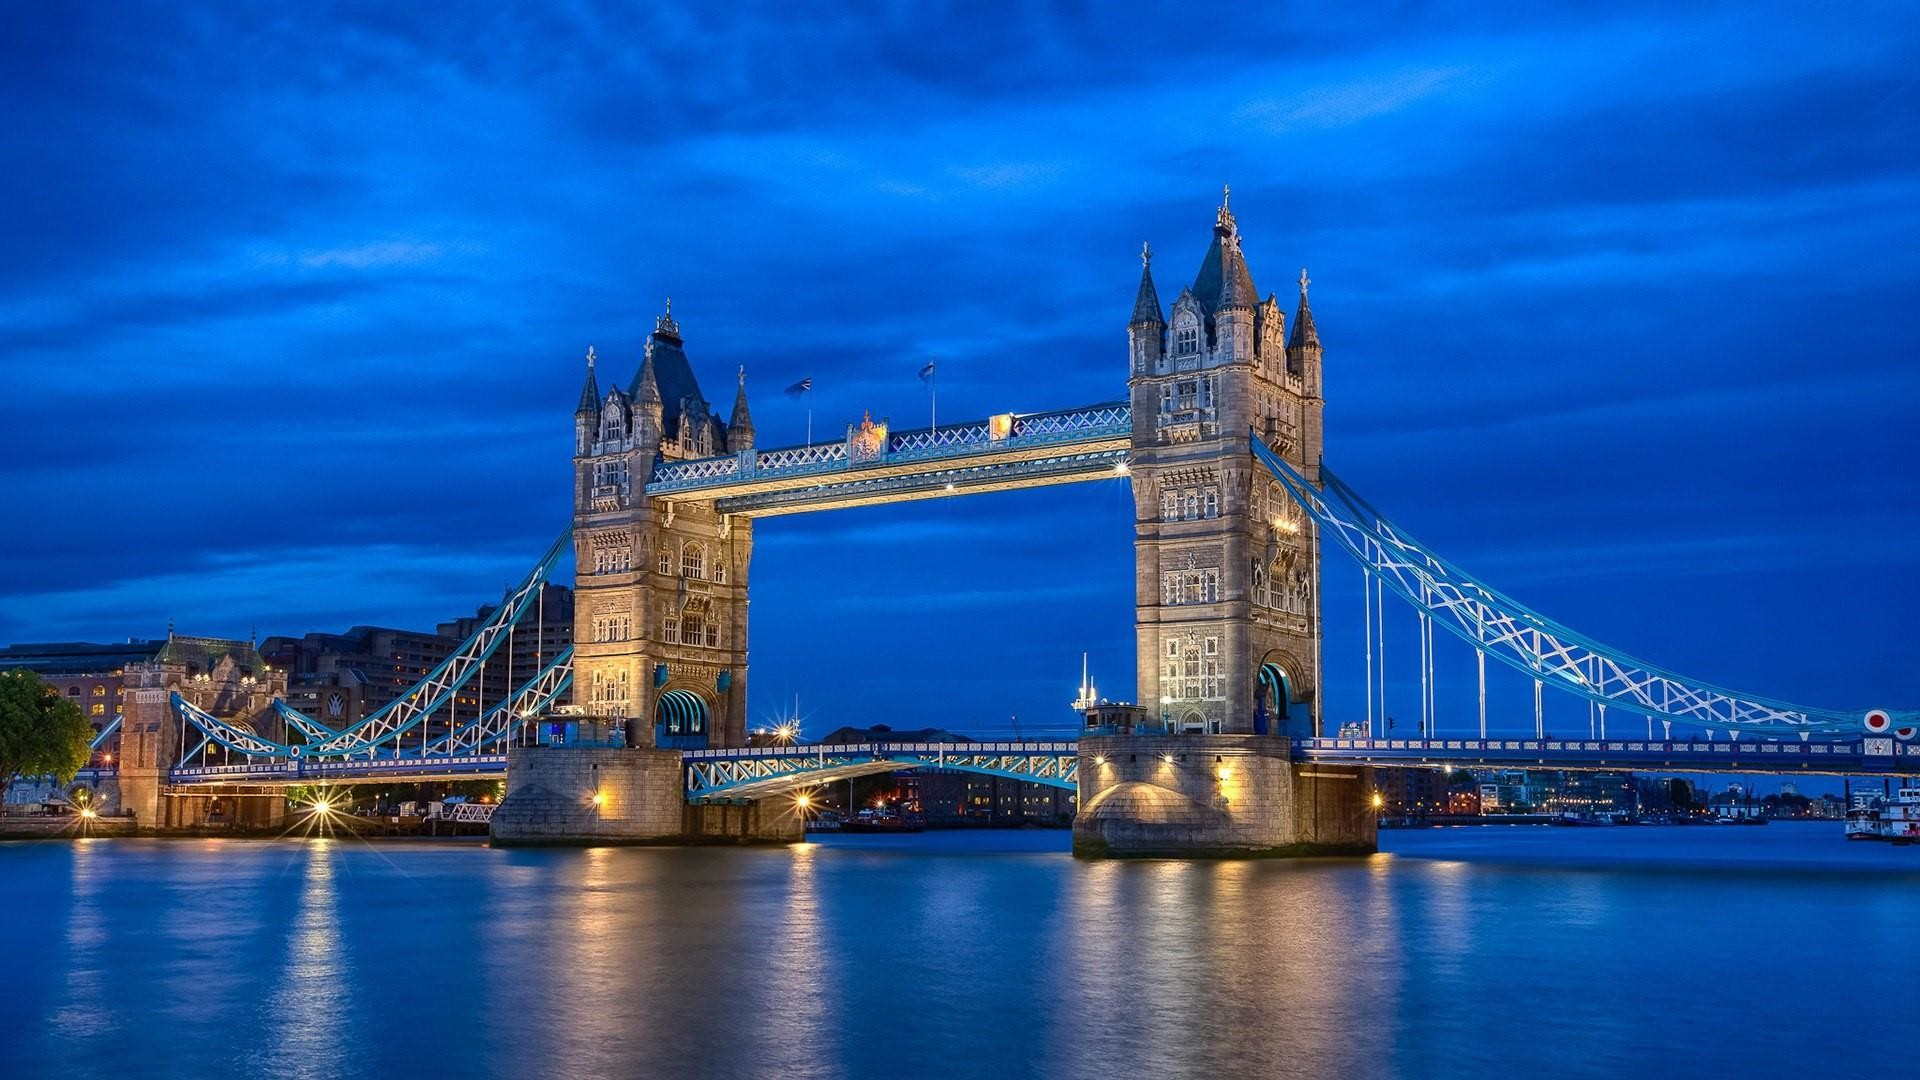 Res: 1920x1080, Tower Bridge Wallpaper | Wallpaper Studio 10 | Tens of thousands HD and  UltraHD wallpapers for Android, Windows and Xbox